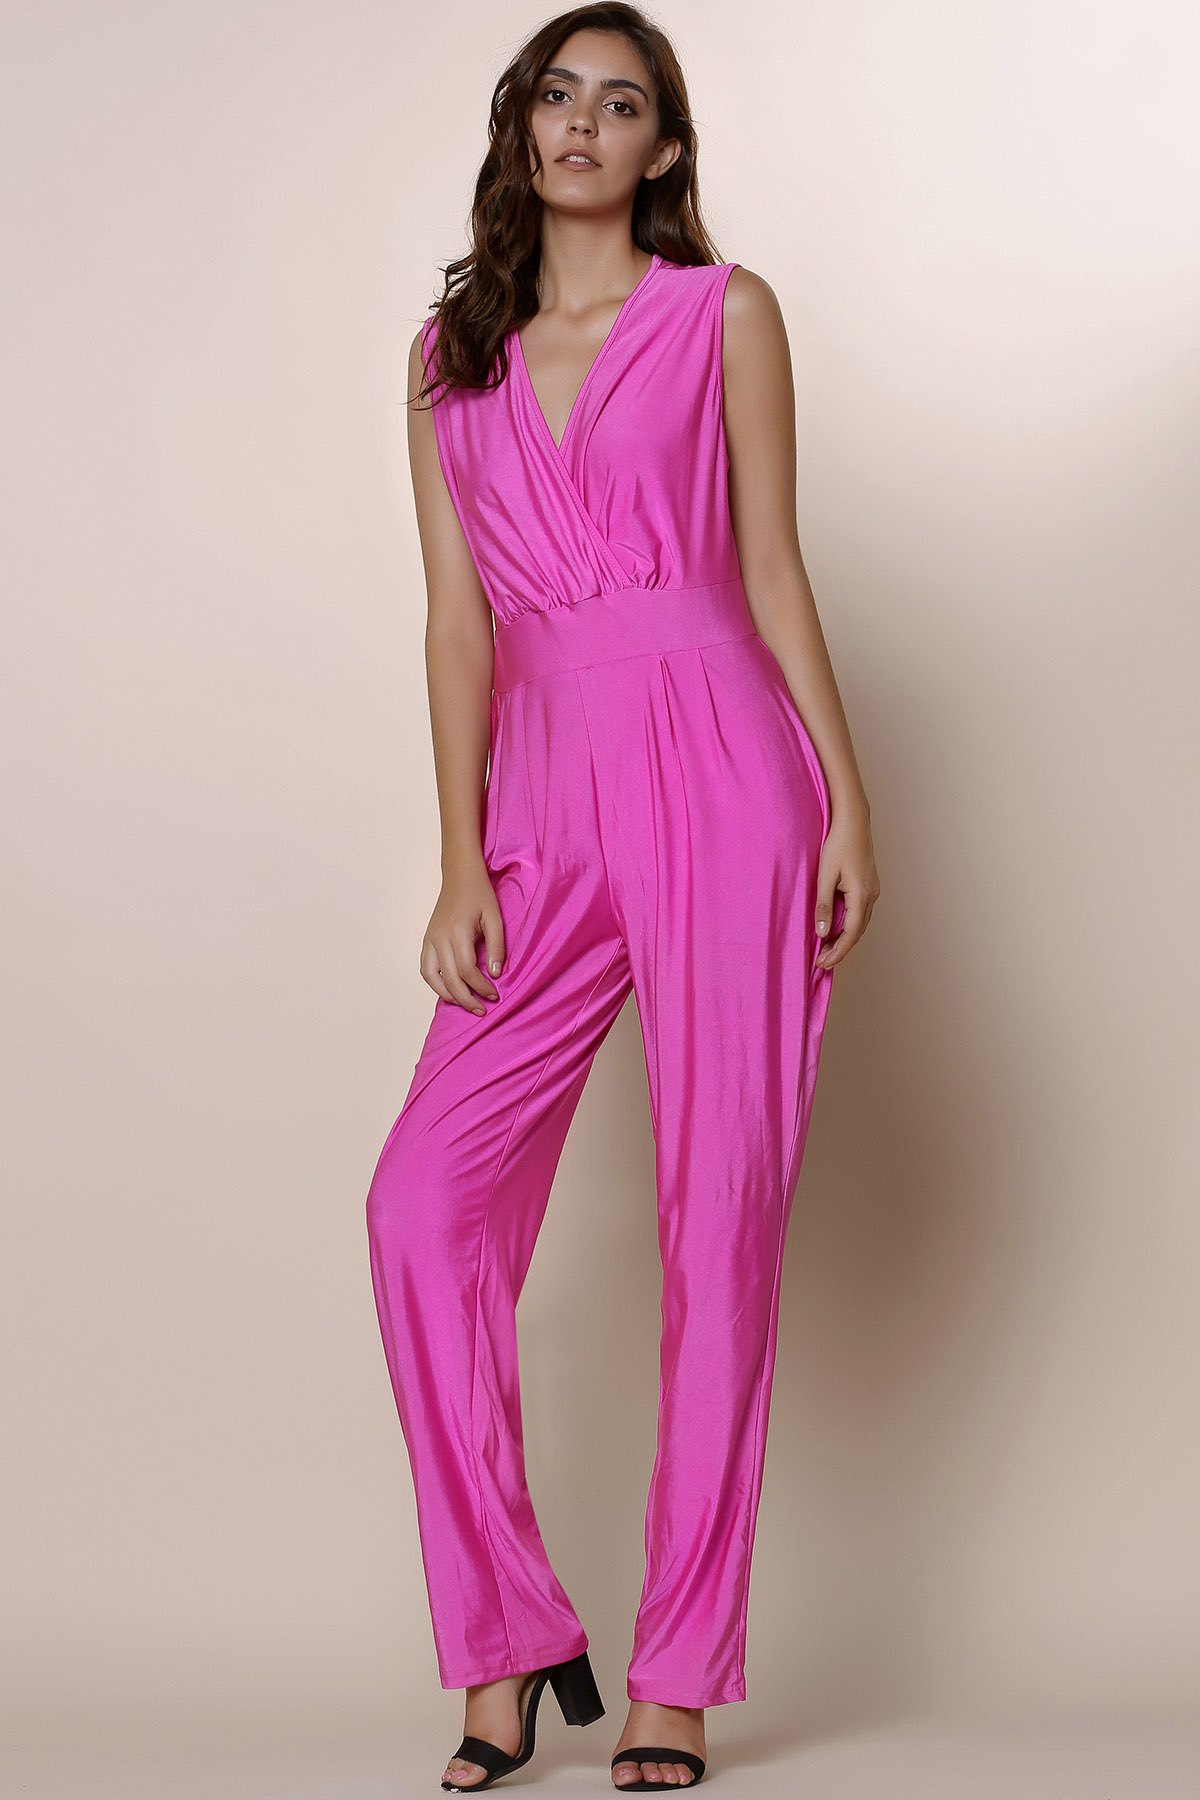 Fashionable jumpsuits for women 55